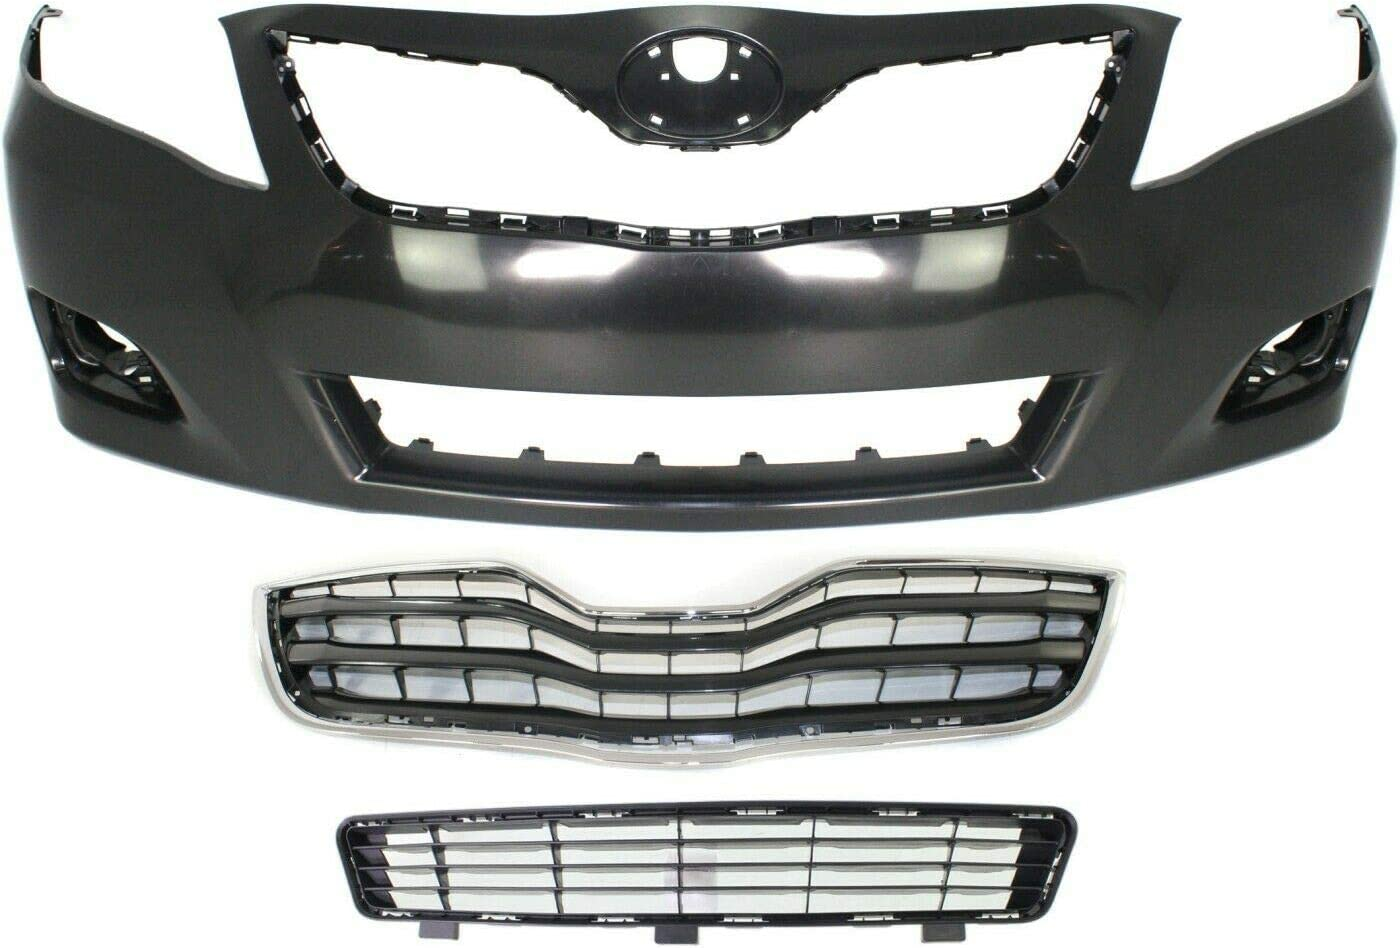 ASL Bumper Cover Kit Compatible Popular standard with 2010-2011 Mo New arrival LE Sedan Camry